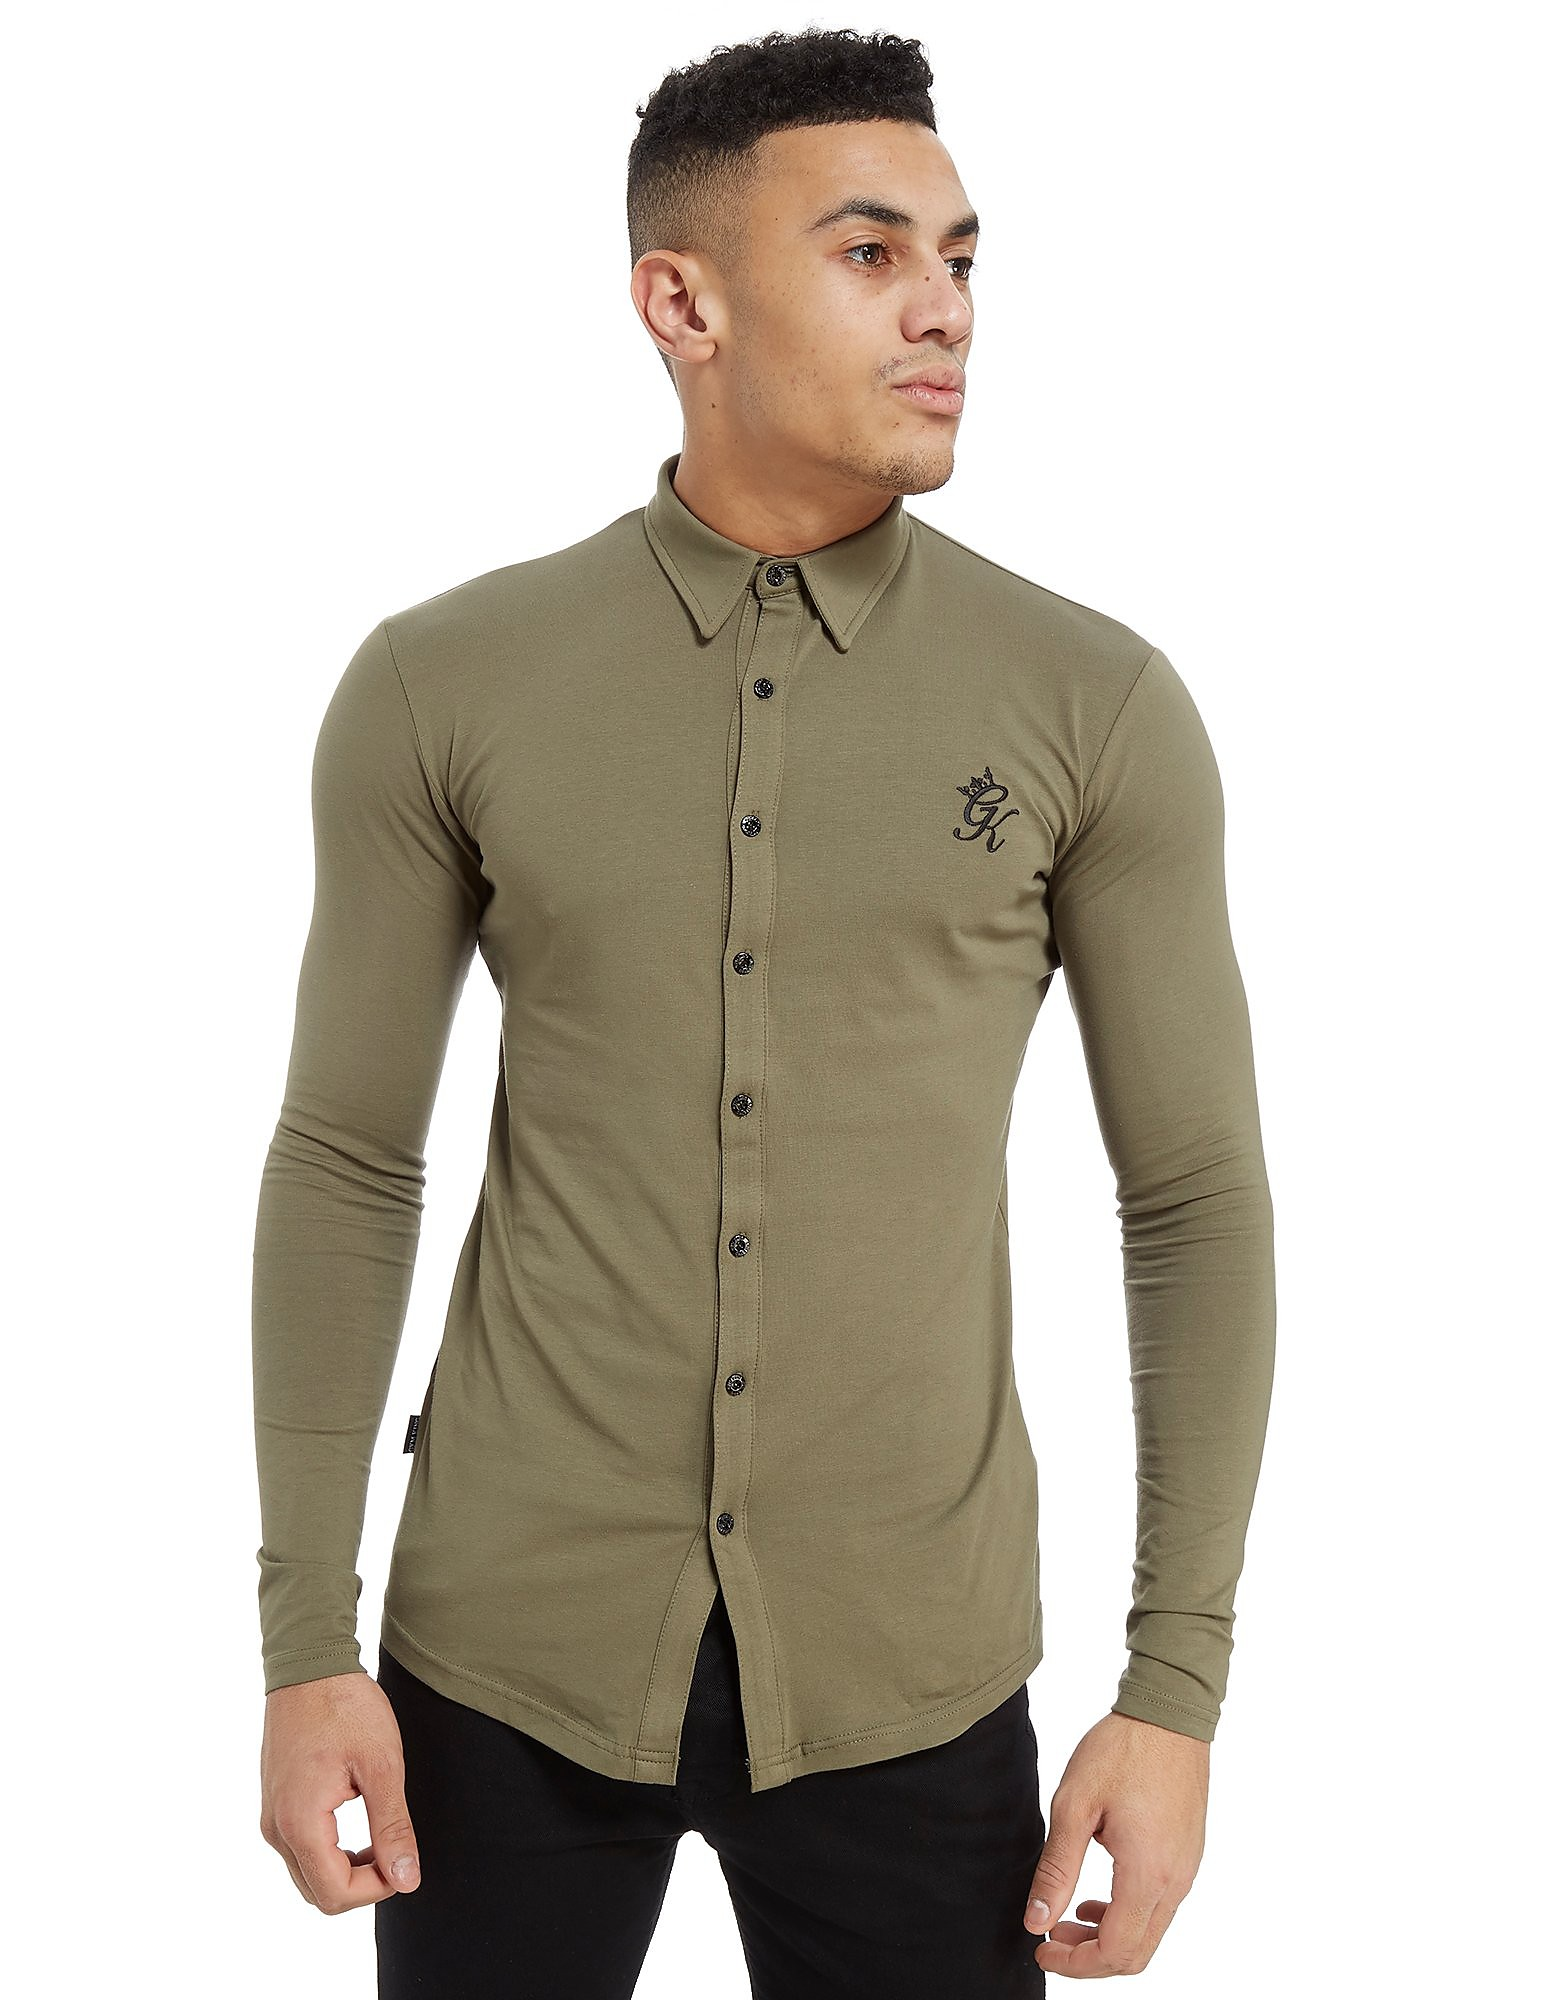 Gym King Core Long Sleeve Shirt